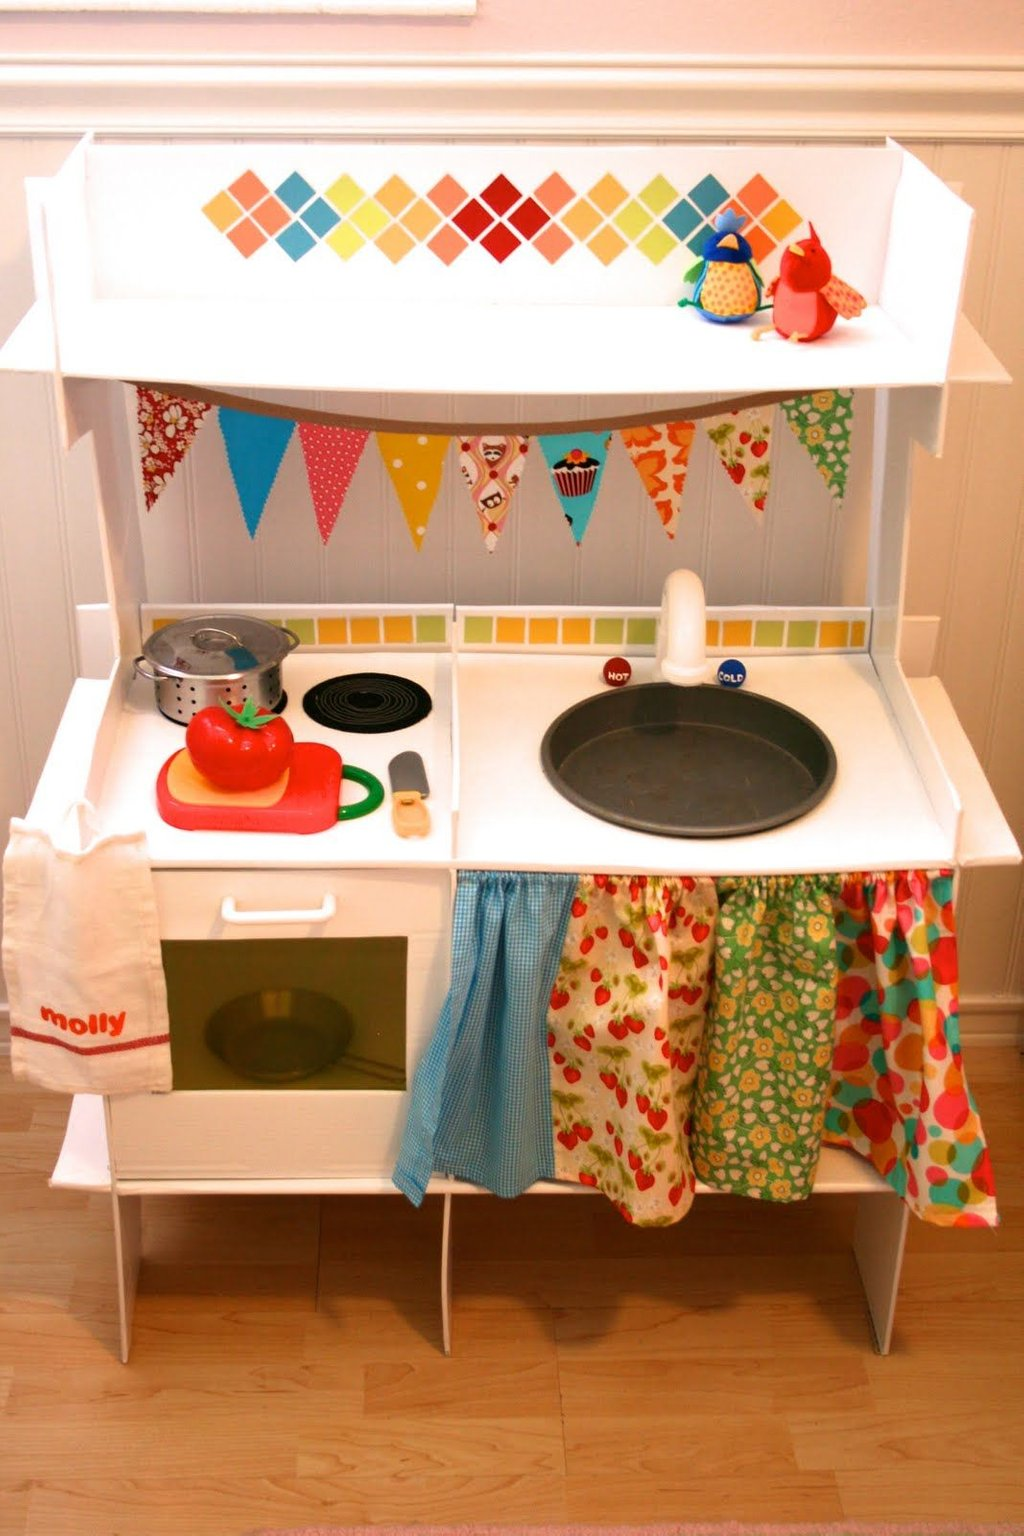 Cardboard Kitchen Forty Road Etsy Diy Wooden Kitchen Playsets For Childhood Education